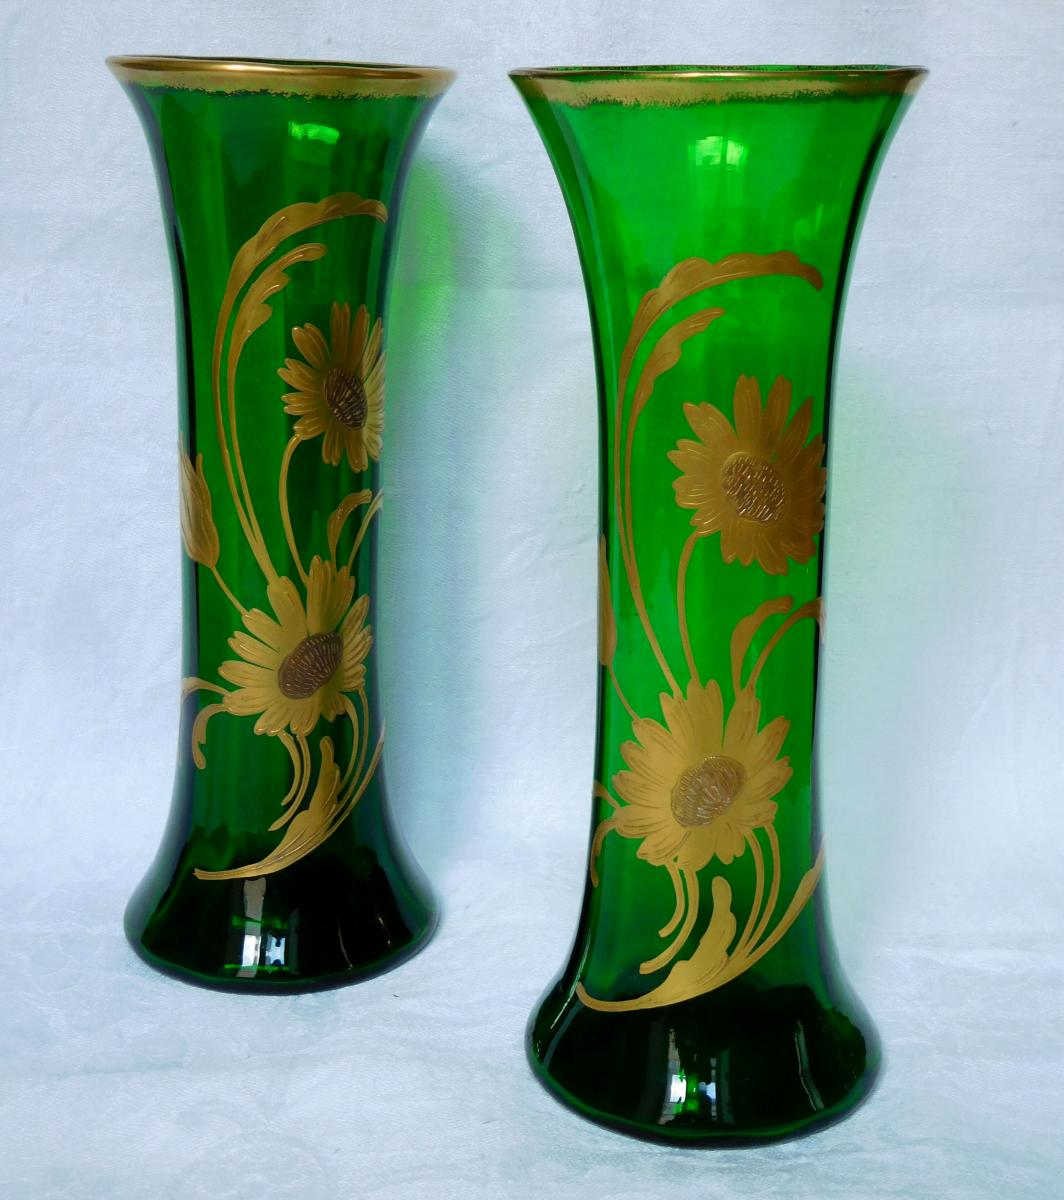 Pair Of Saint Louis Crystal Green Vases - Fine Gold Floral Decoration - Circa 1900